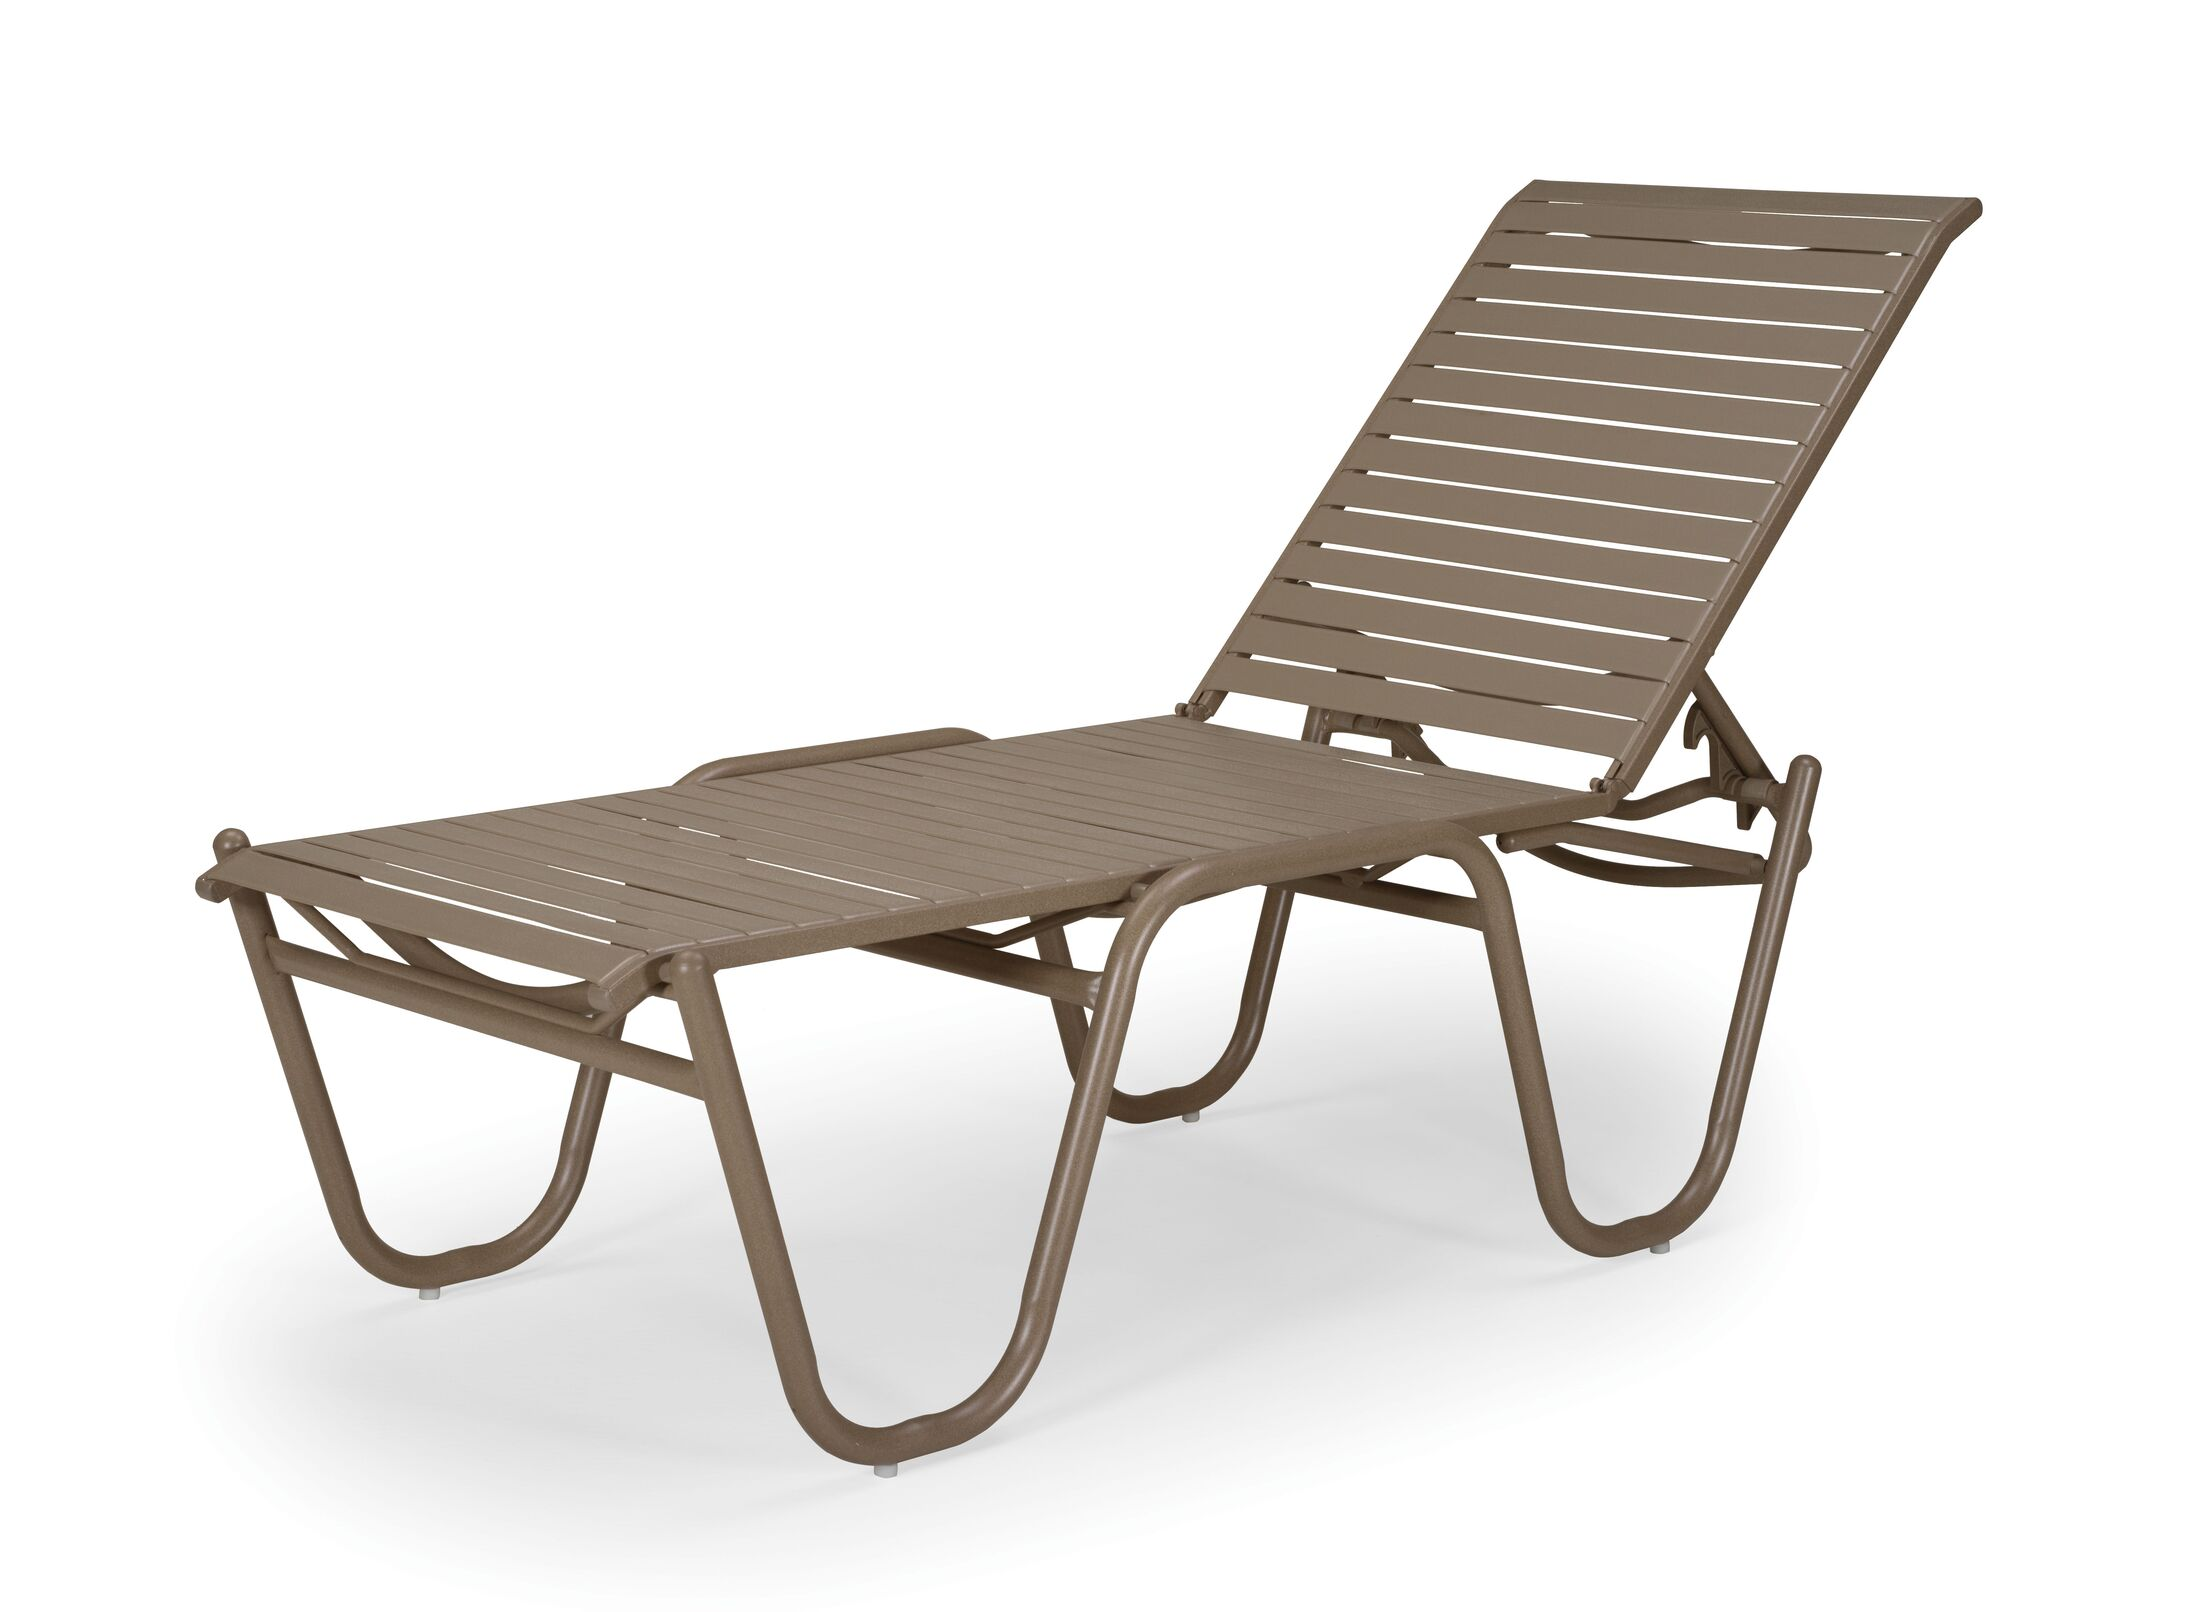 Reliance Strap High Reclining Chaise Lounge (Set of 4)